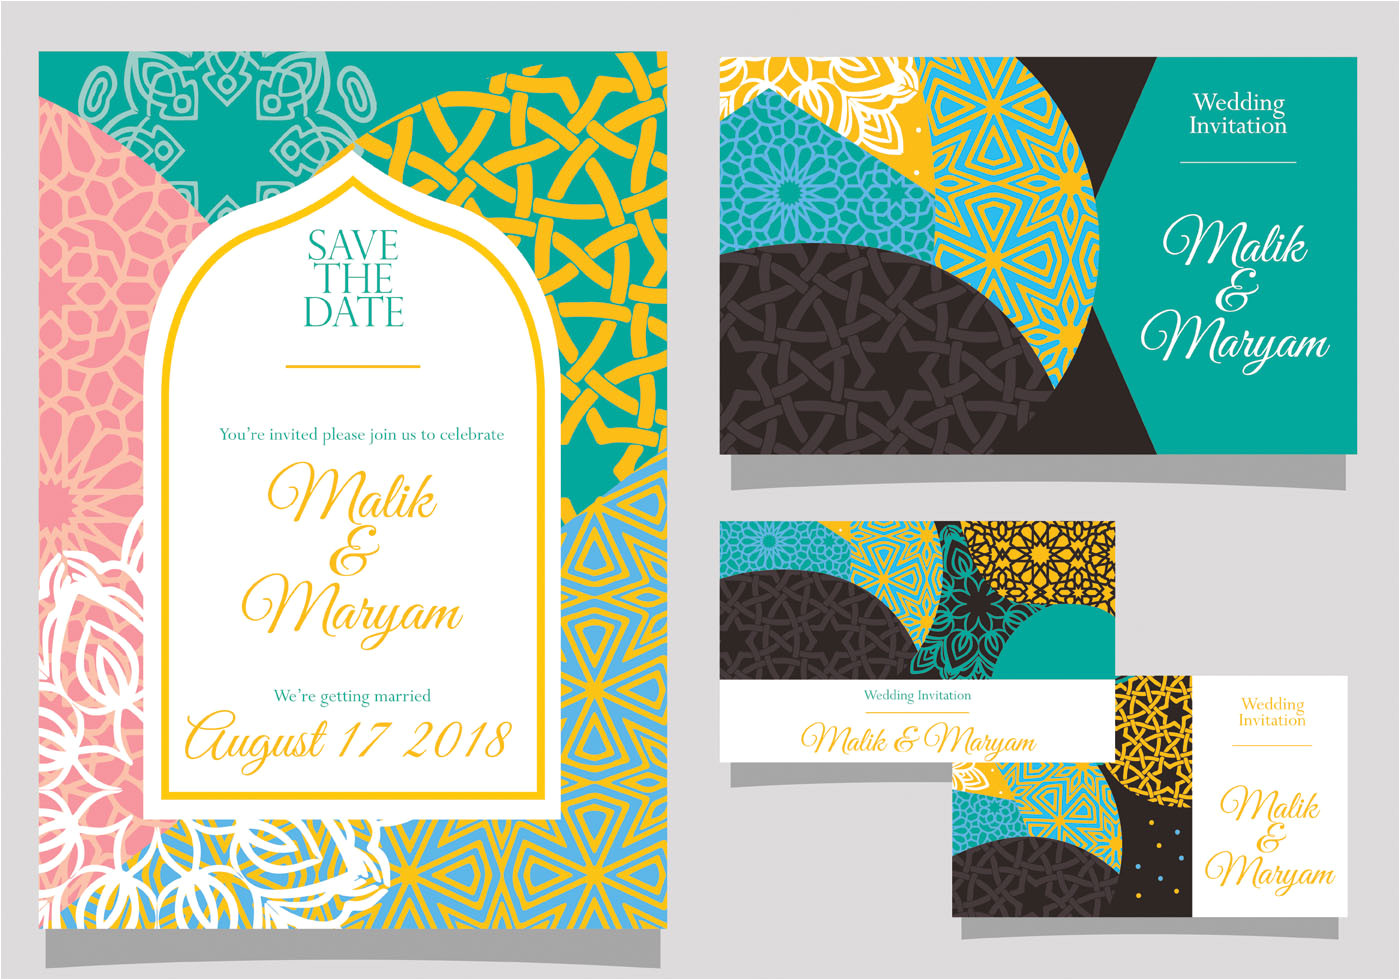 wedding invitation with islamic style vector jpg